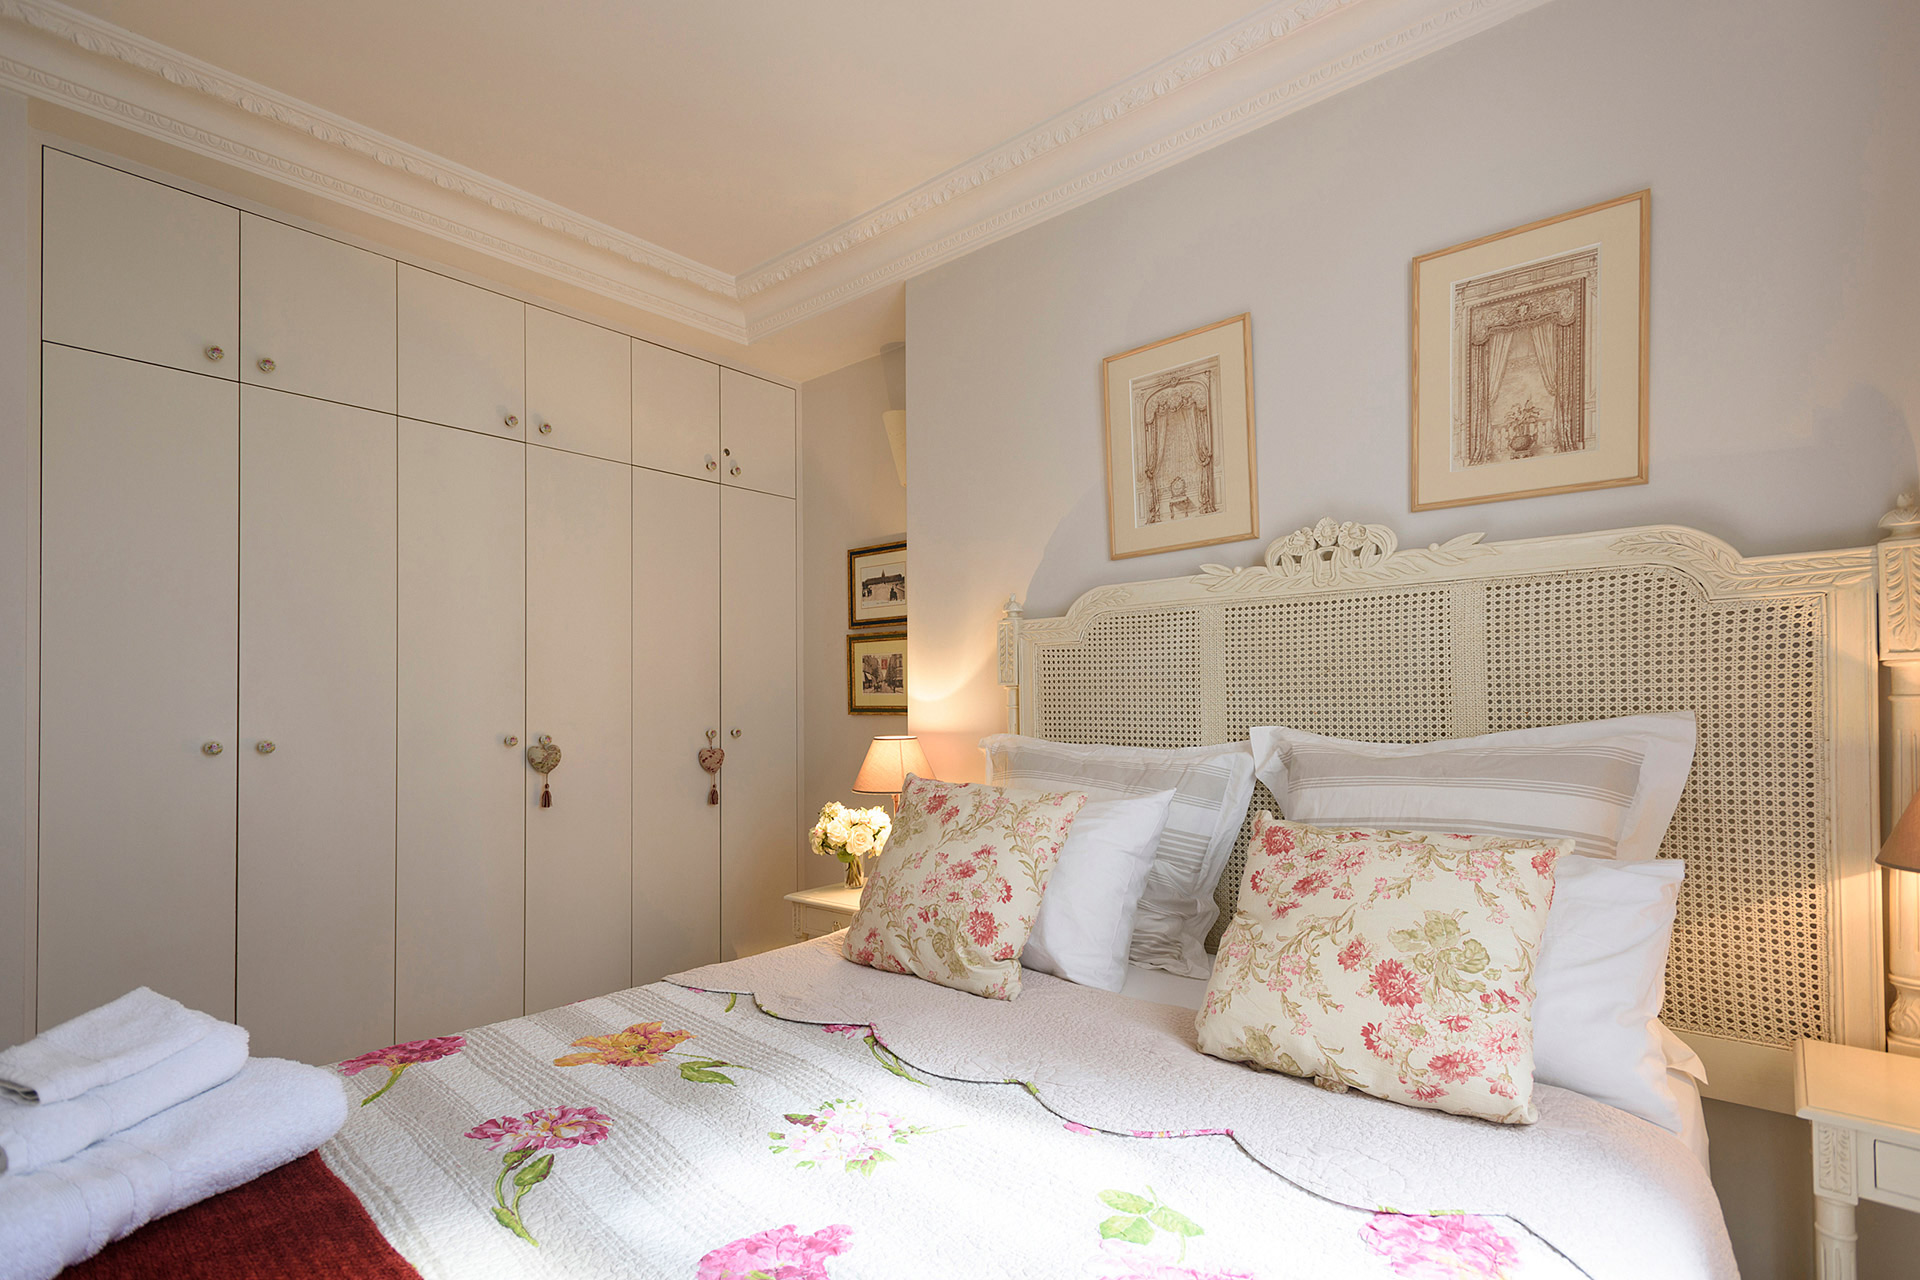 Large closet provide plenty of storage in the Clairette vacation rental offered by Paris Perfect